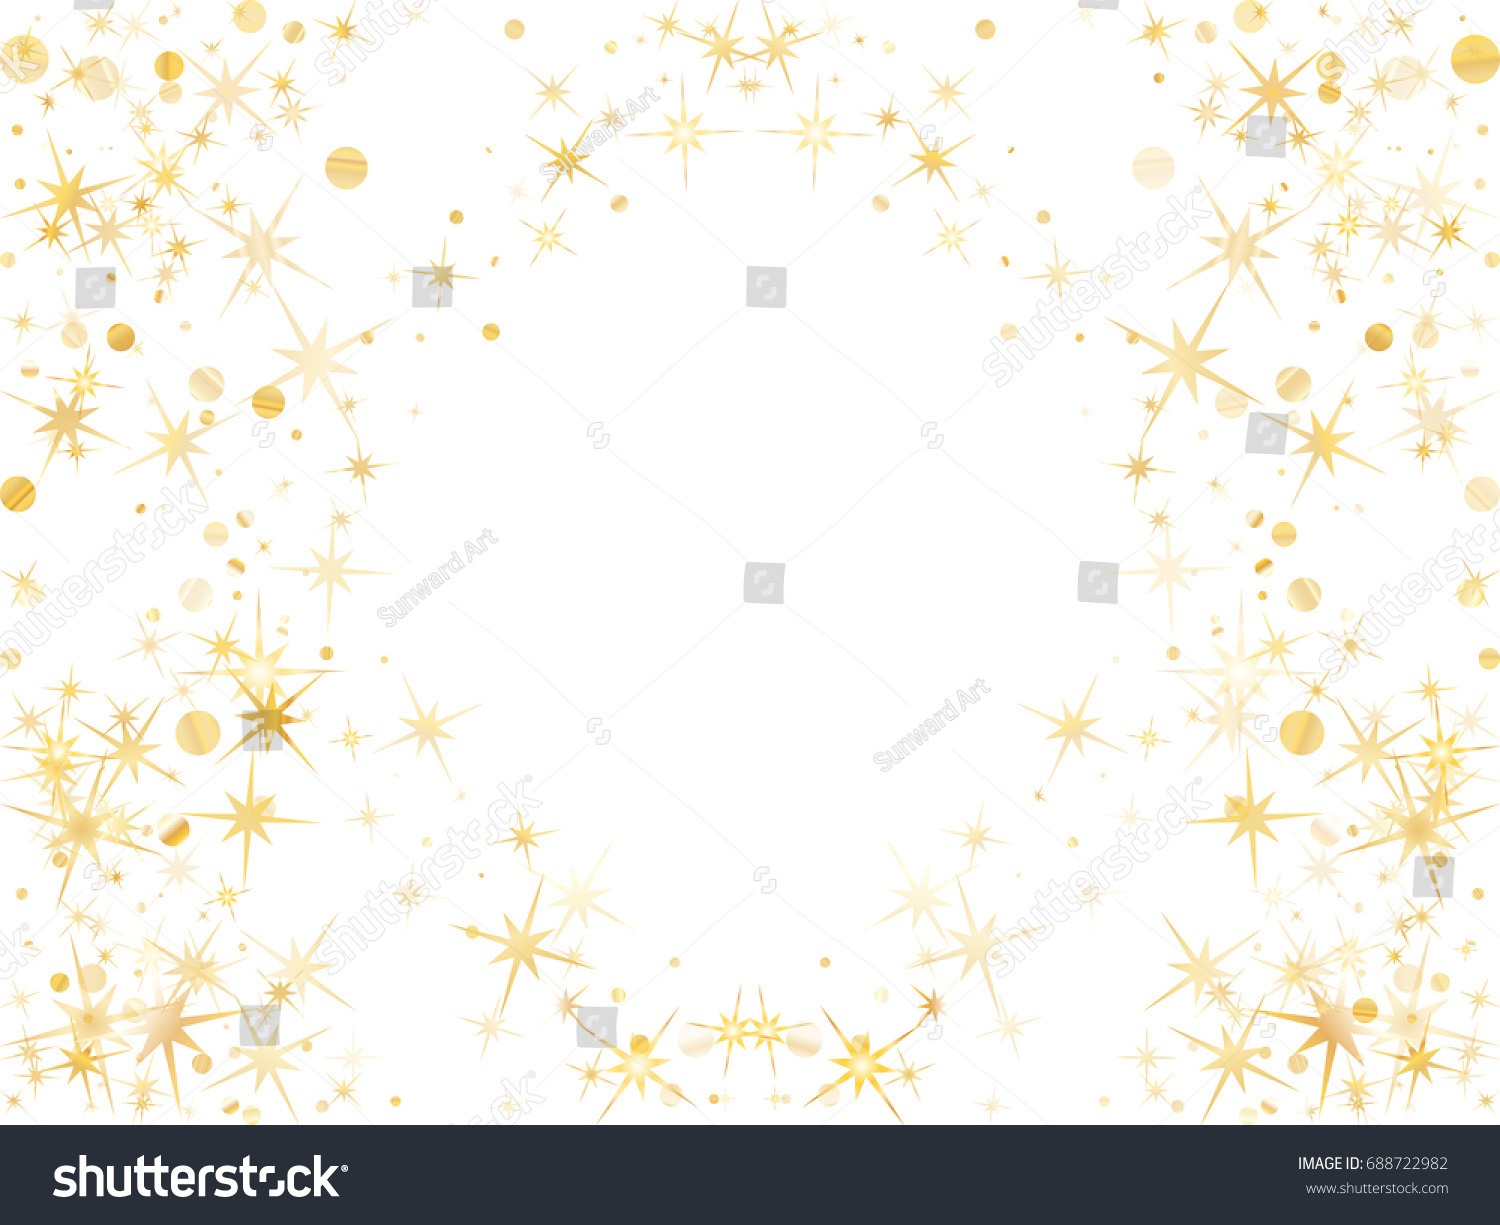 Holiday stardust frame border birthday card stock vector 688722982 holiday stardust frame of border for birthday card decorative pattern on white with golden objects bookmarktalkfo Image collections